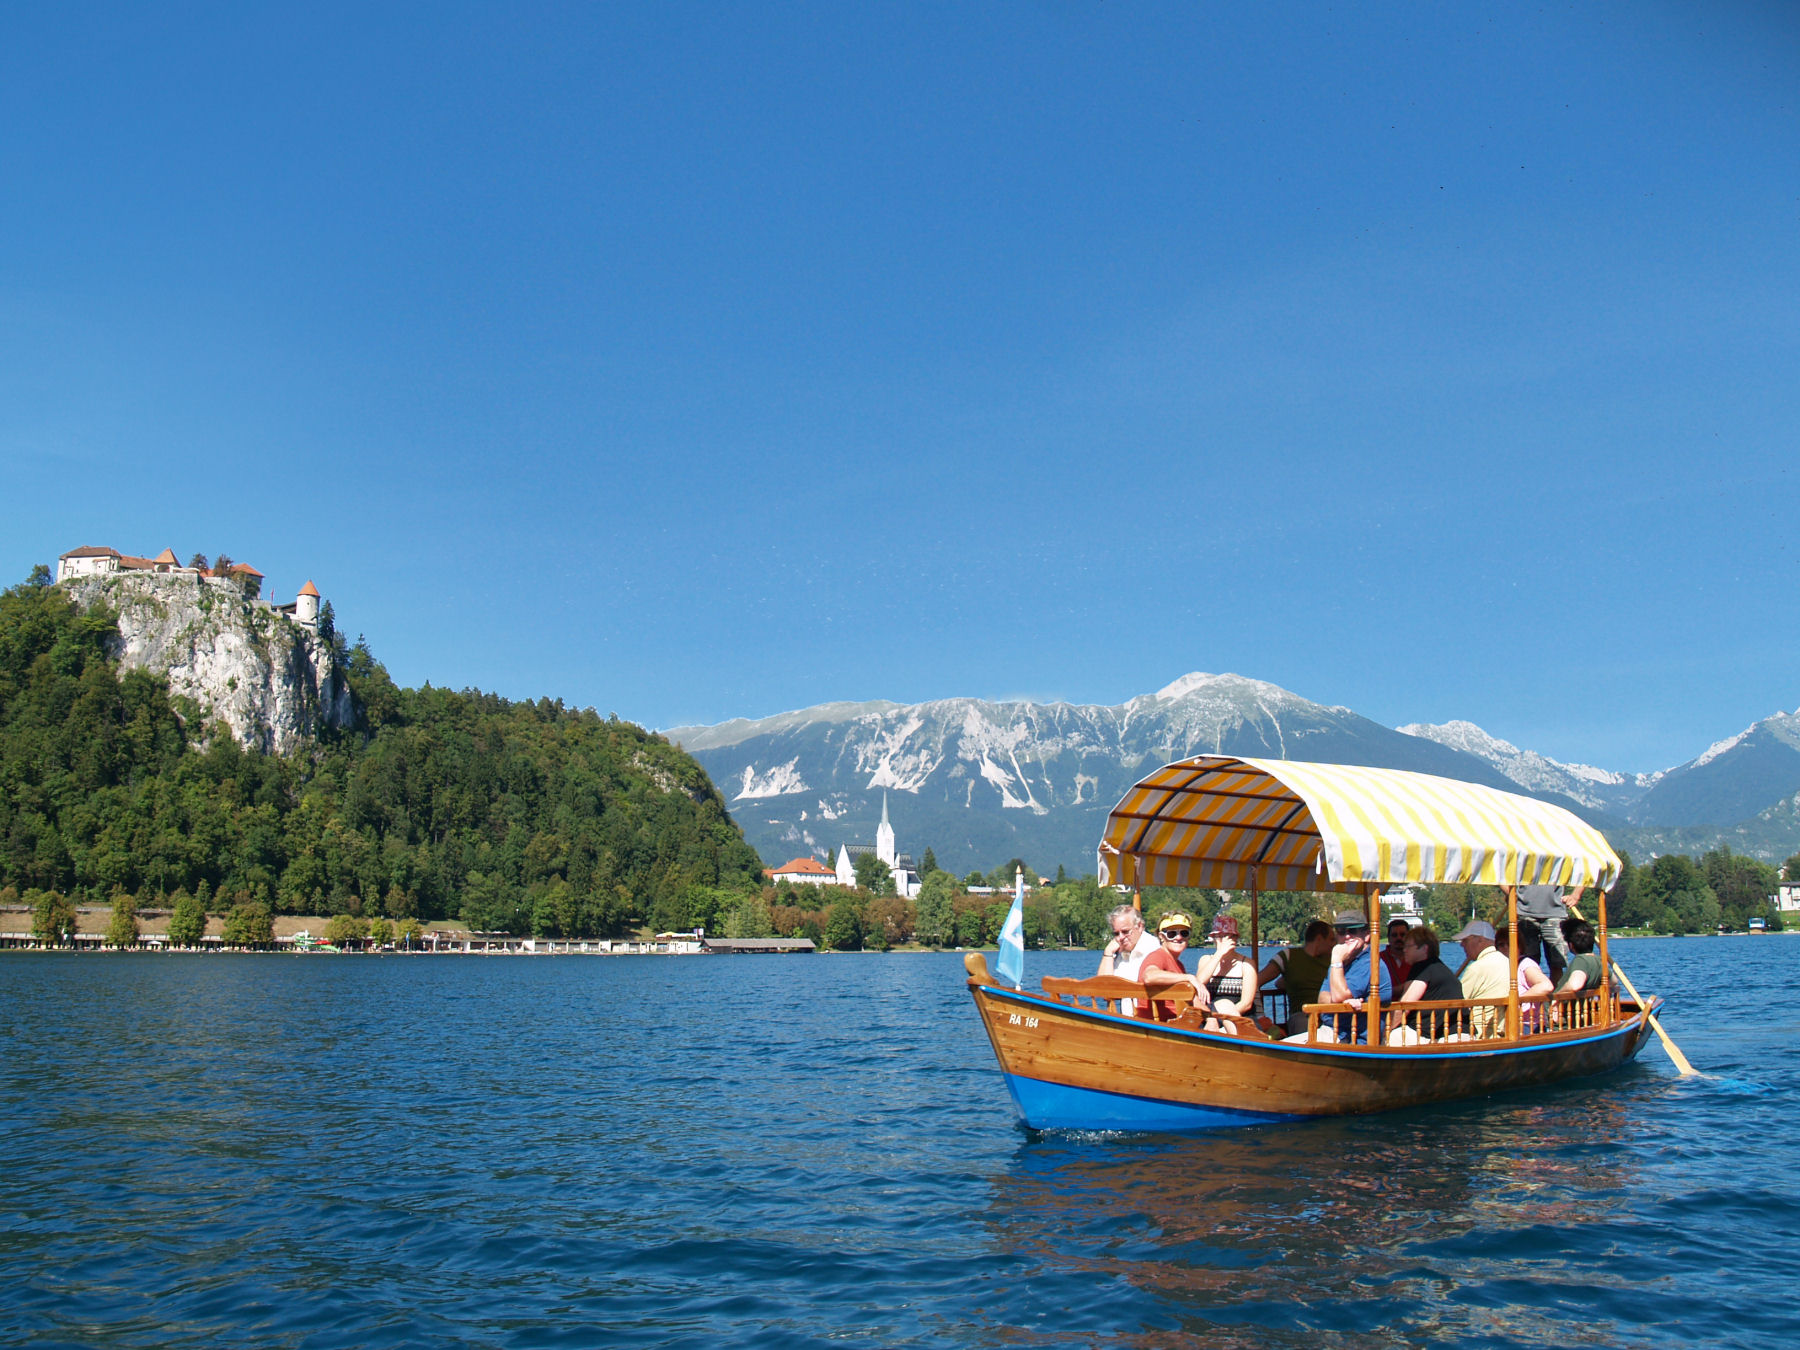 You need to travel by gondola, known here as Pletna to visit the Lake Bled island